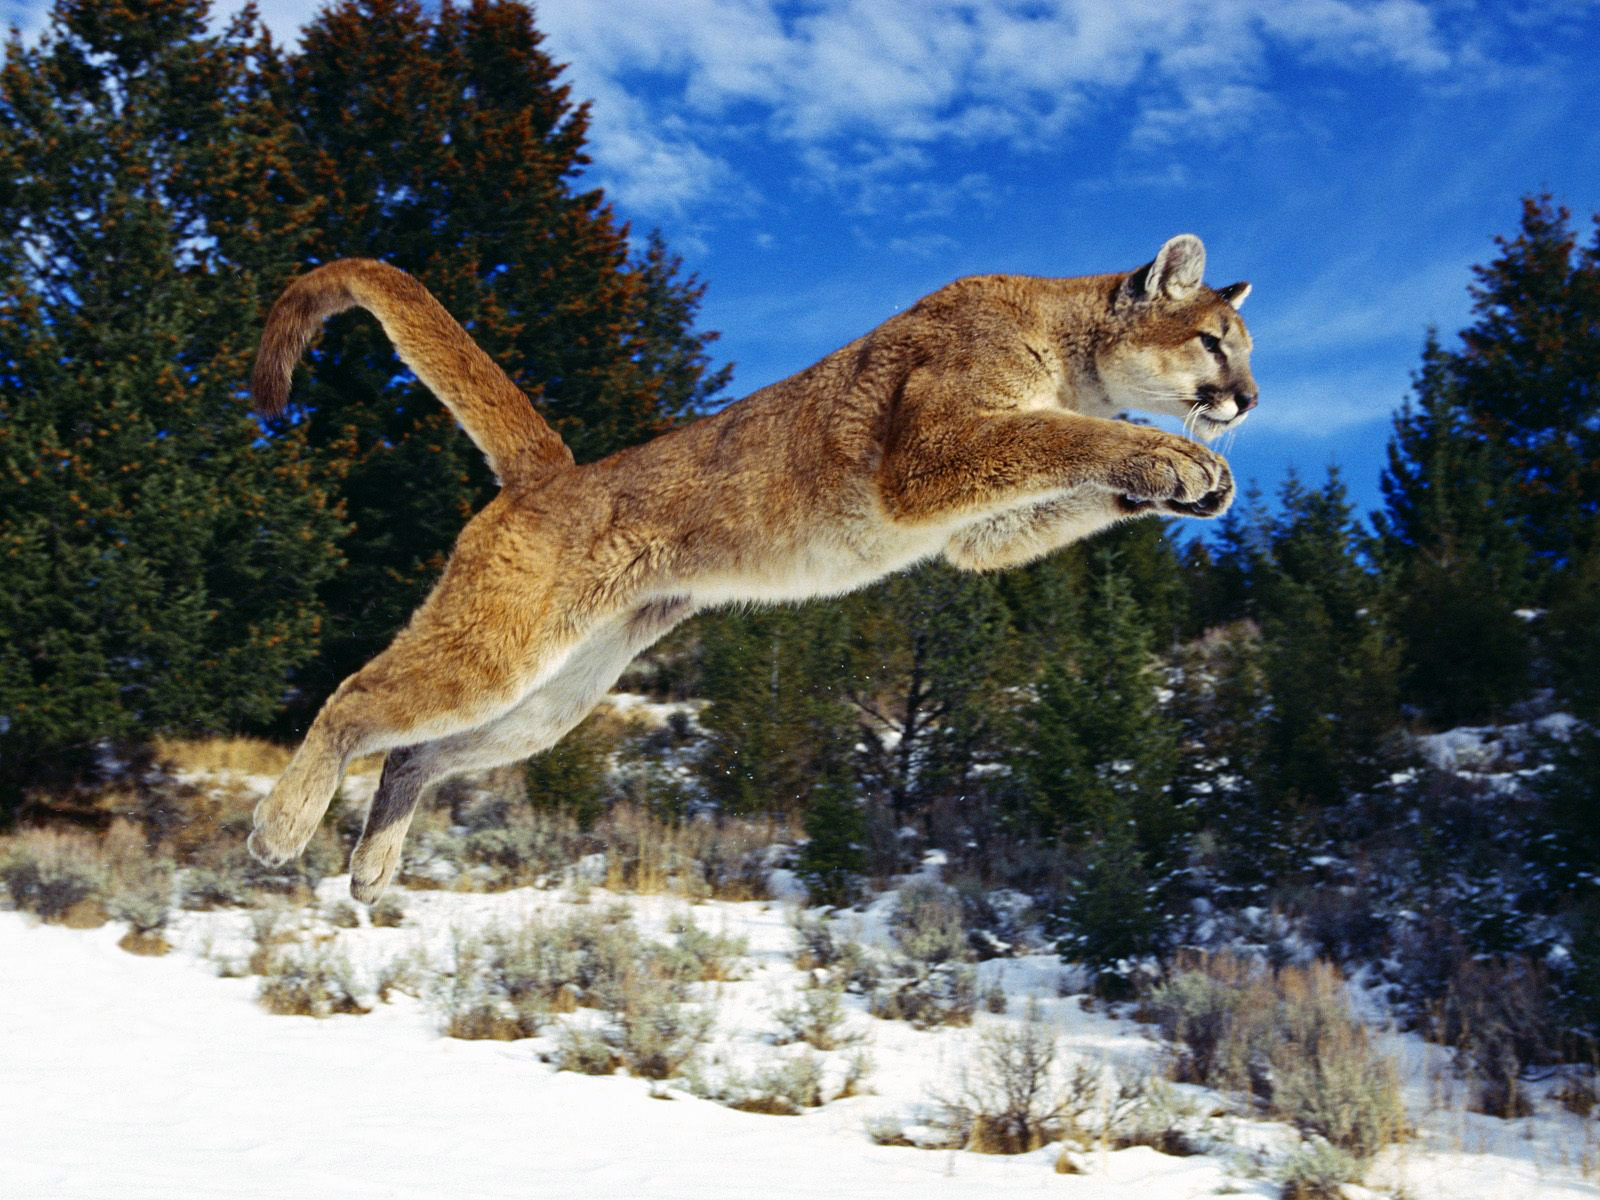 Image Gallary 1: Beautiful Animals Hunting Photos collection